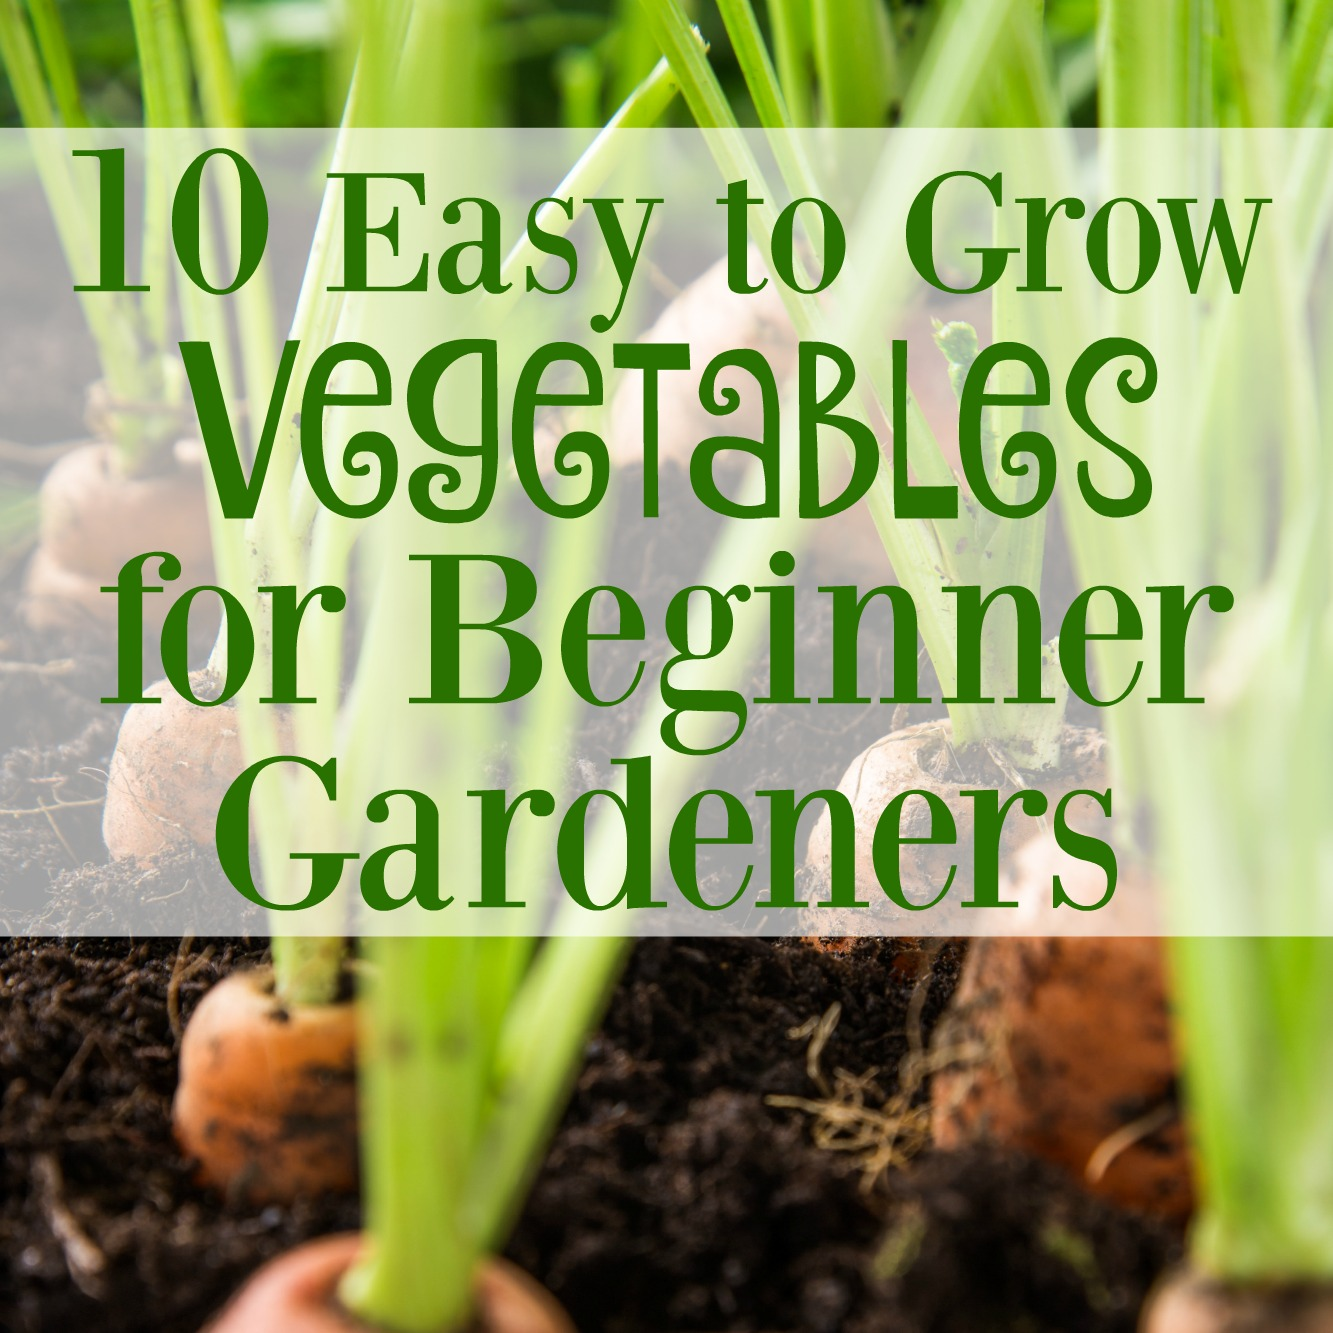 Best Vegetables To Grow In Raised Beds: 10 Easy To Grow Vegetables For Beginner Gardeners